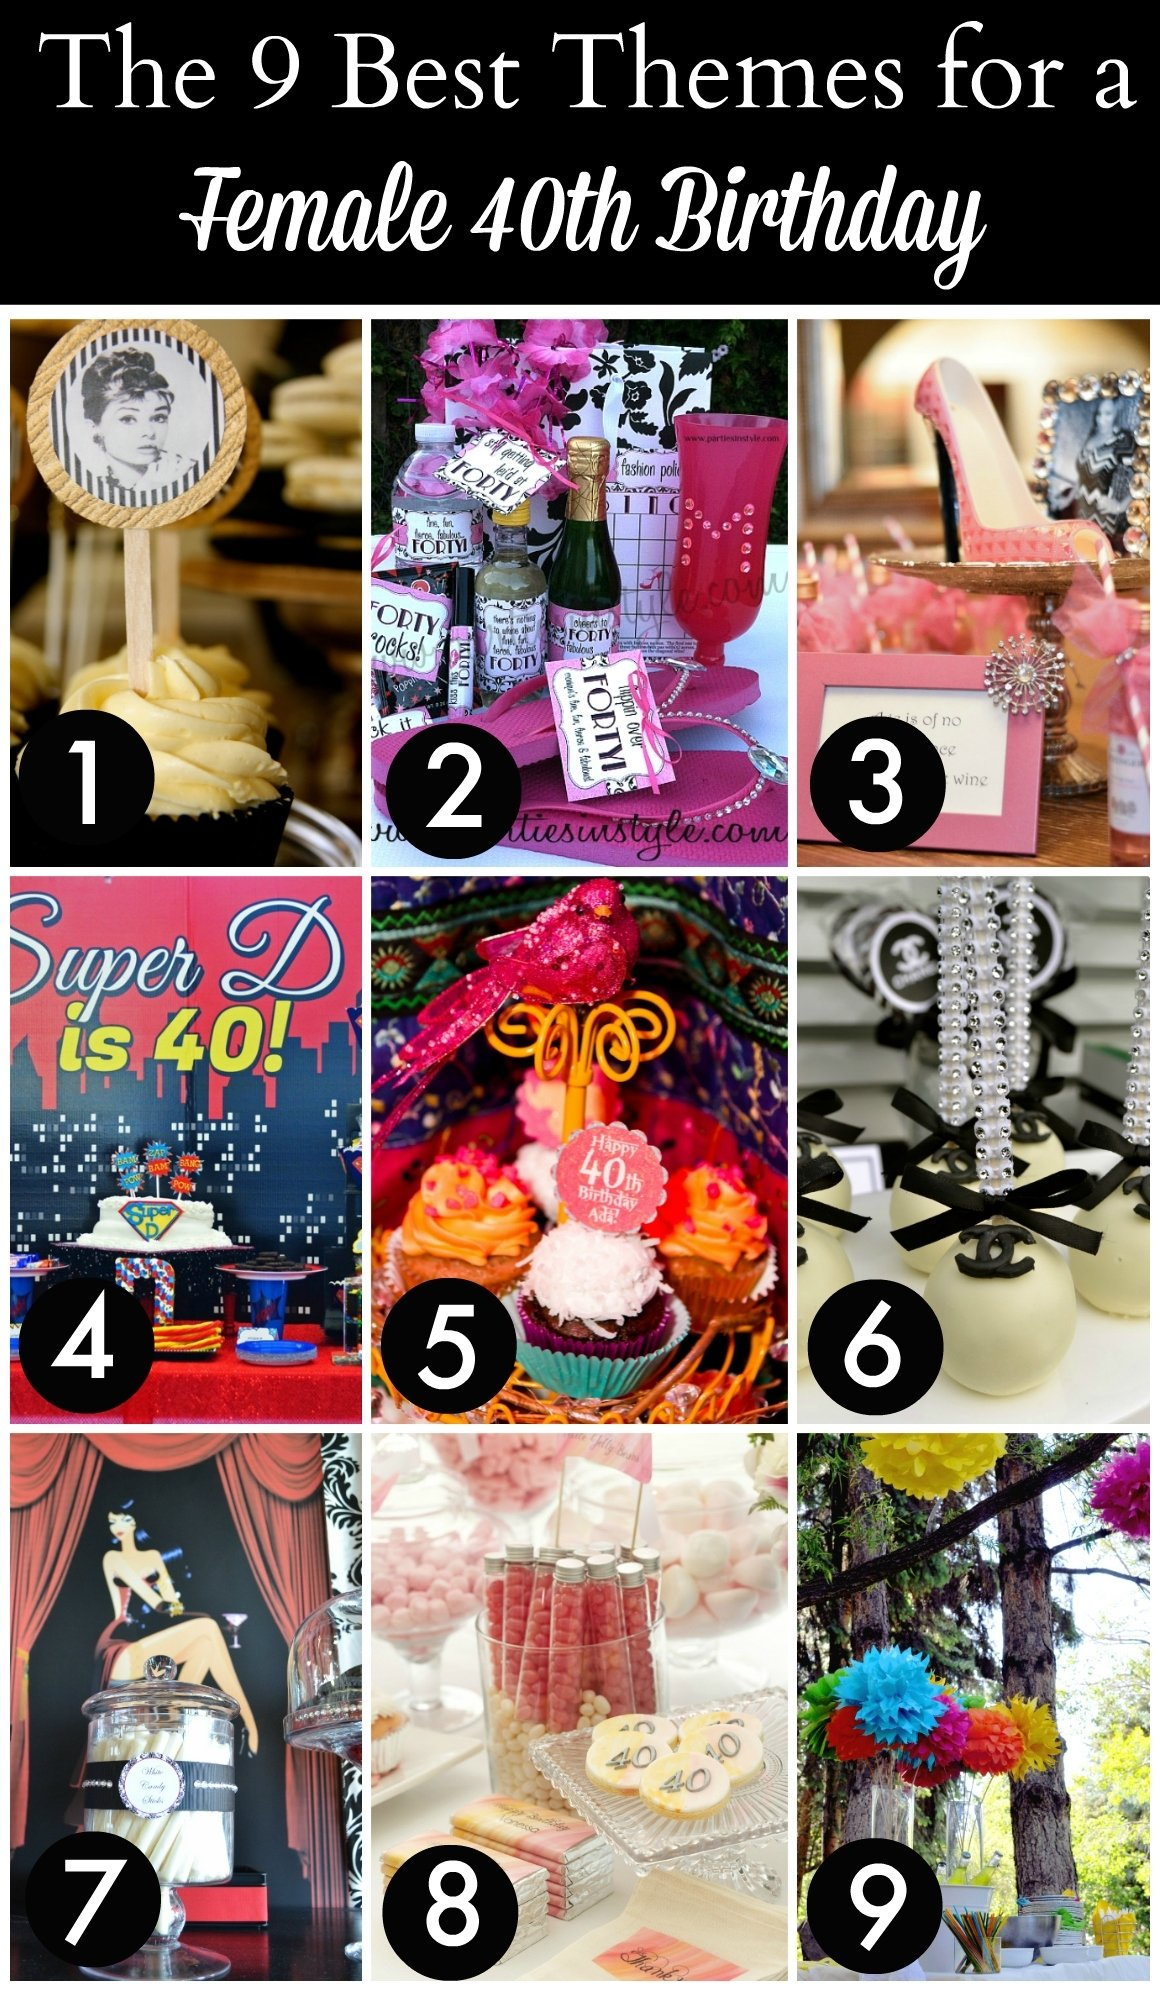 10 Most Popular Party Ideas For 40Th Birthday the 12 best 40th birthday themes for women catch my party 18 2021